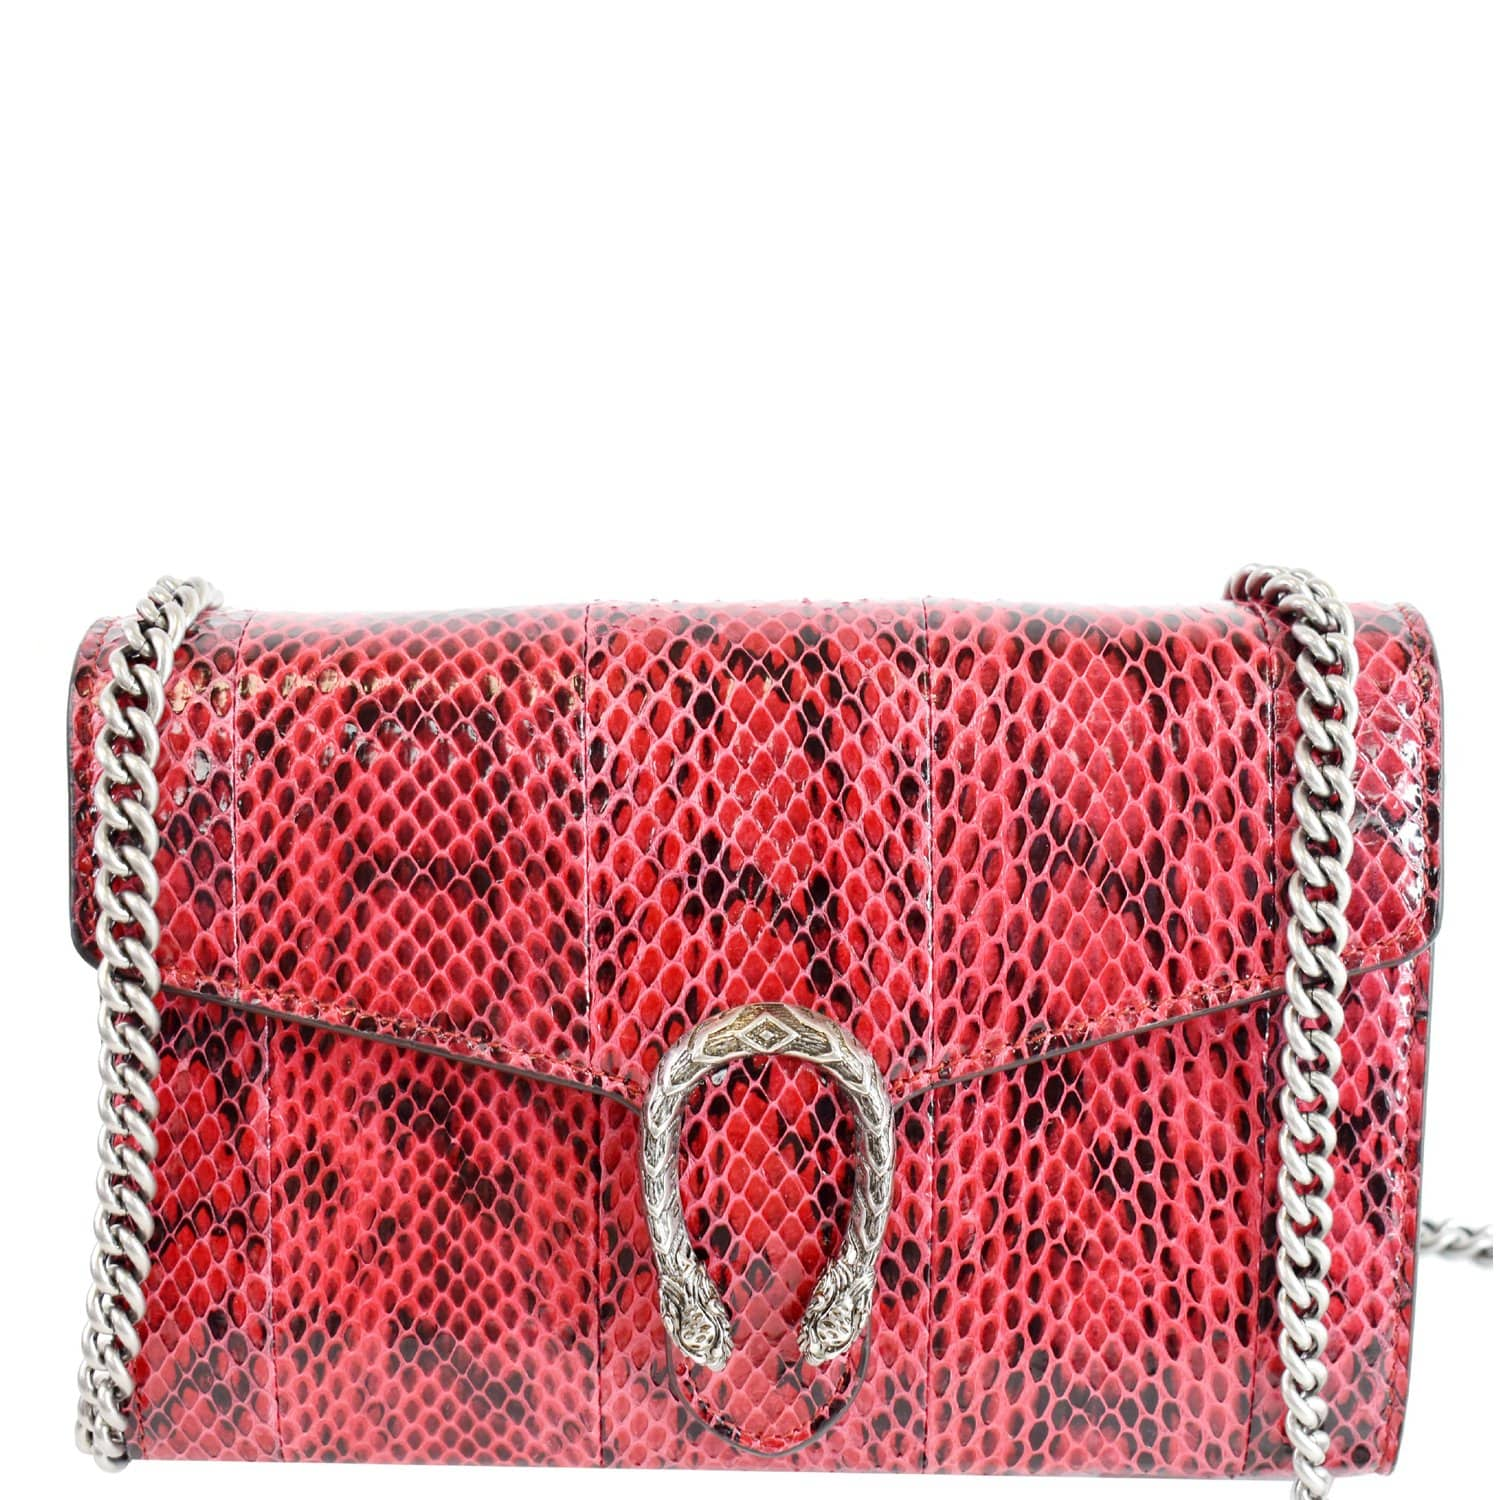 GUCCI Dionysus Mini Python Leather Crossbody Chain Wallet Red 401231